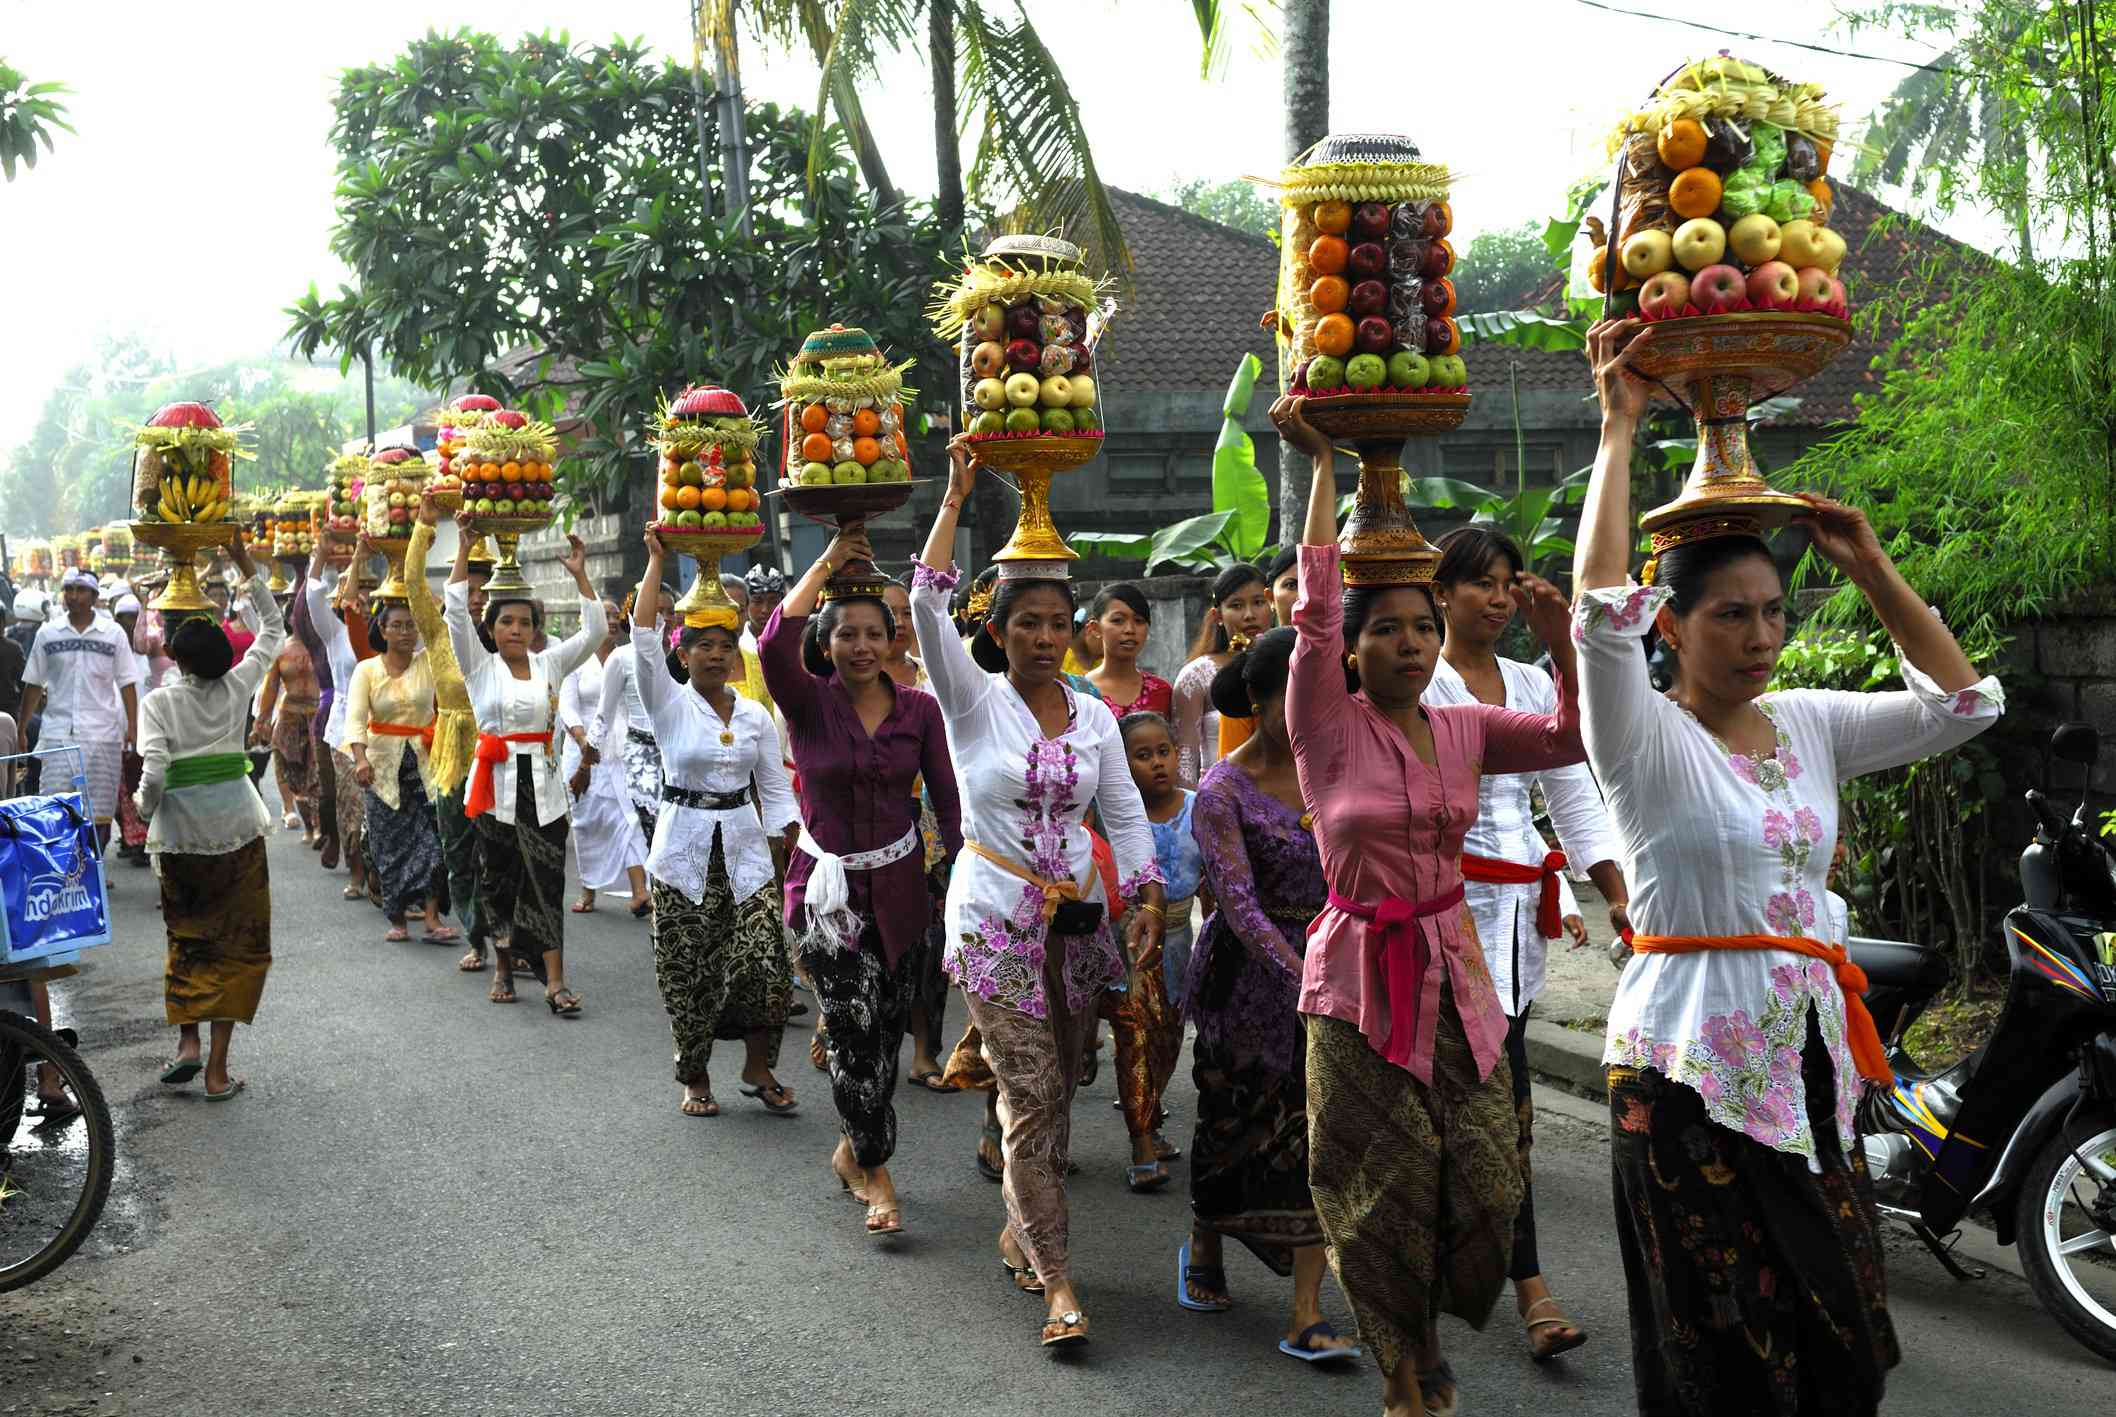 Women carrying offerings to the village temple as part of the celebration of Galungan